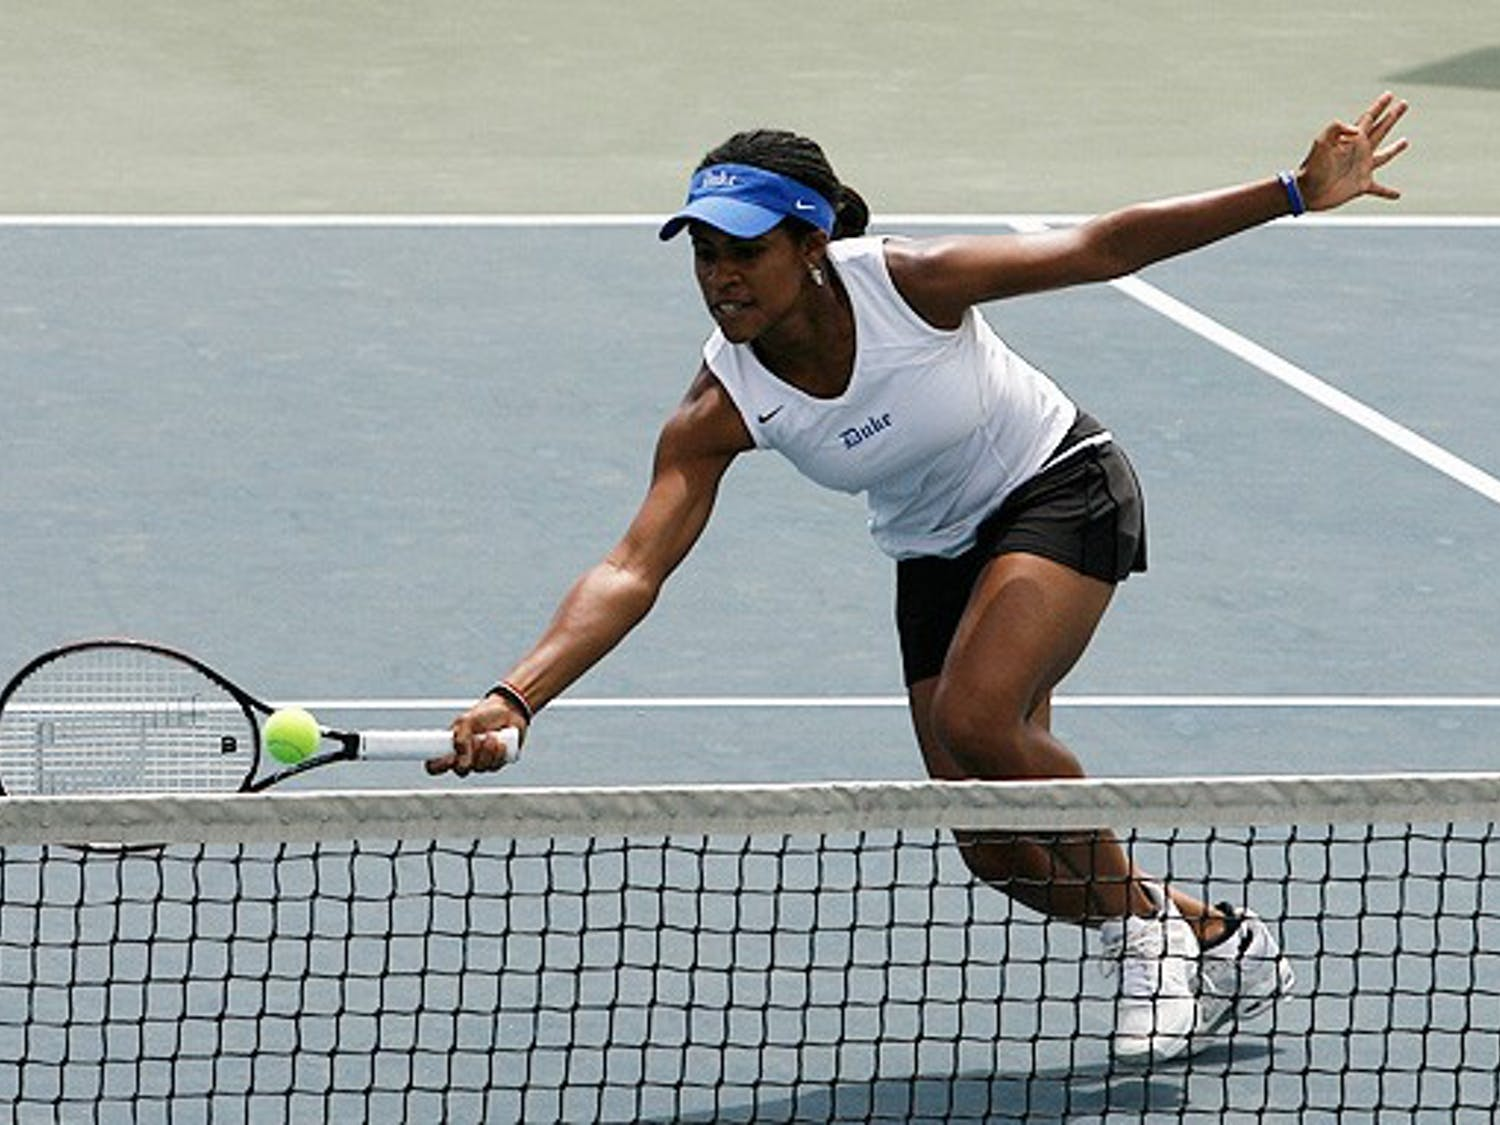 Junior Ellah Nze, along with senior Amanda Granson, lost her doubles match and fell in straight sets to Florida State's Lauren McCreless in singles.